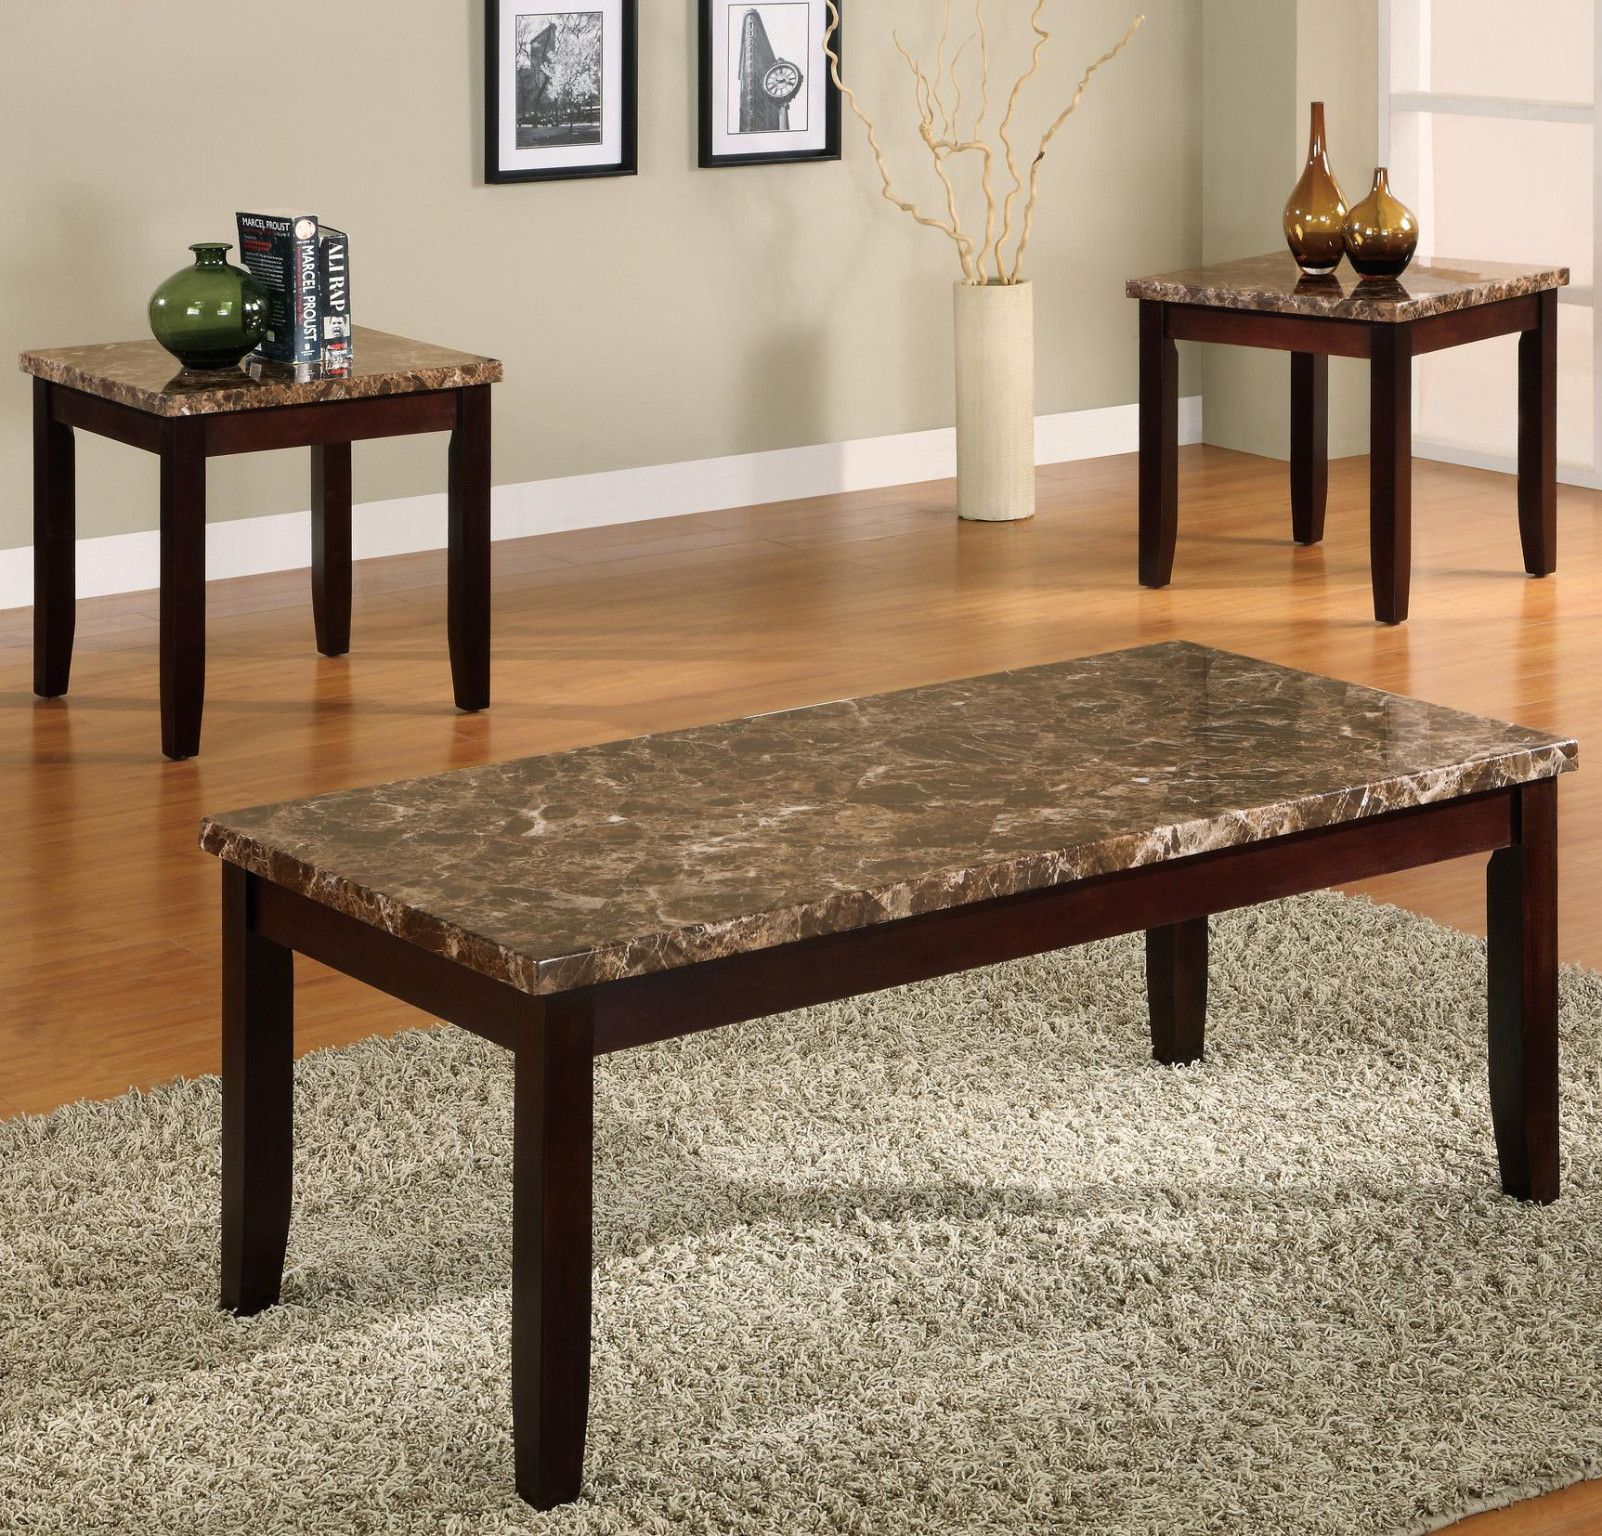 Ferrara 3 Piece Table Set Coffee and 2 End Tables $229 00 C M 7221